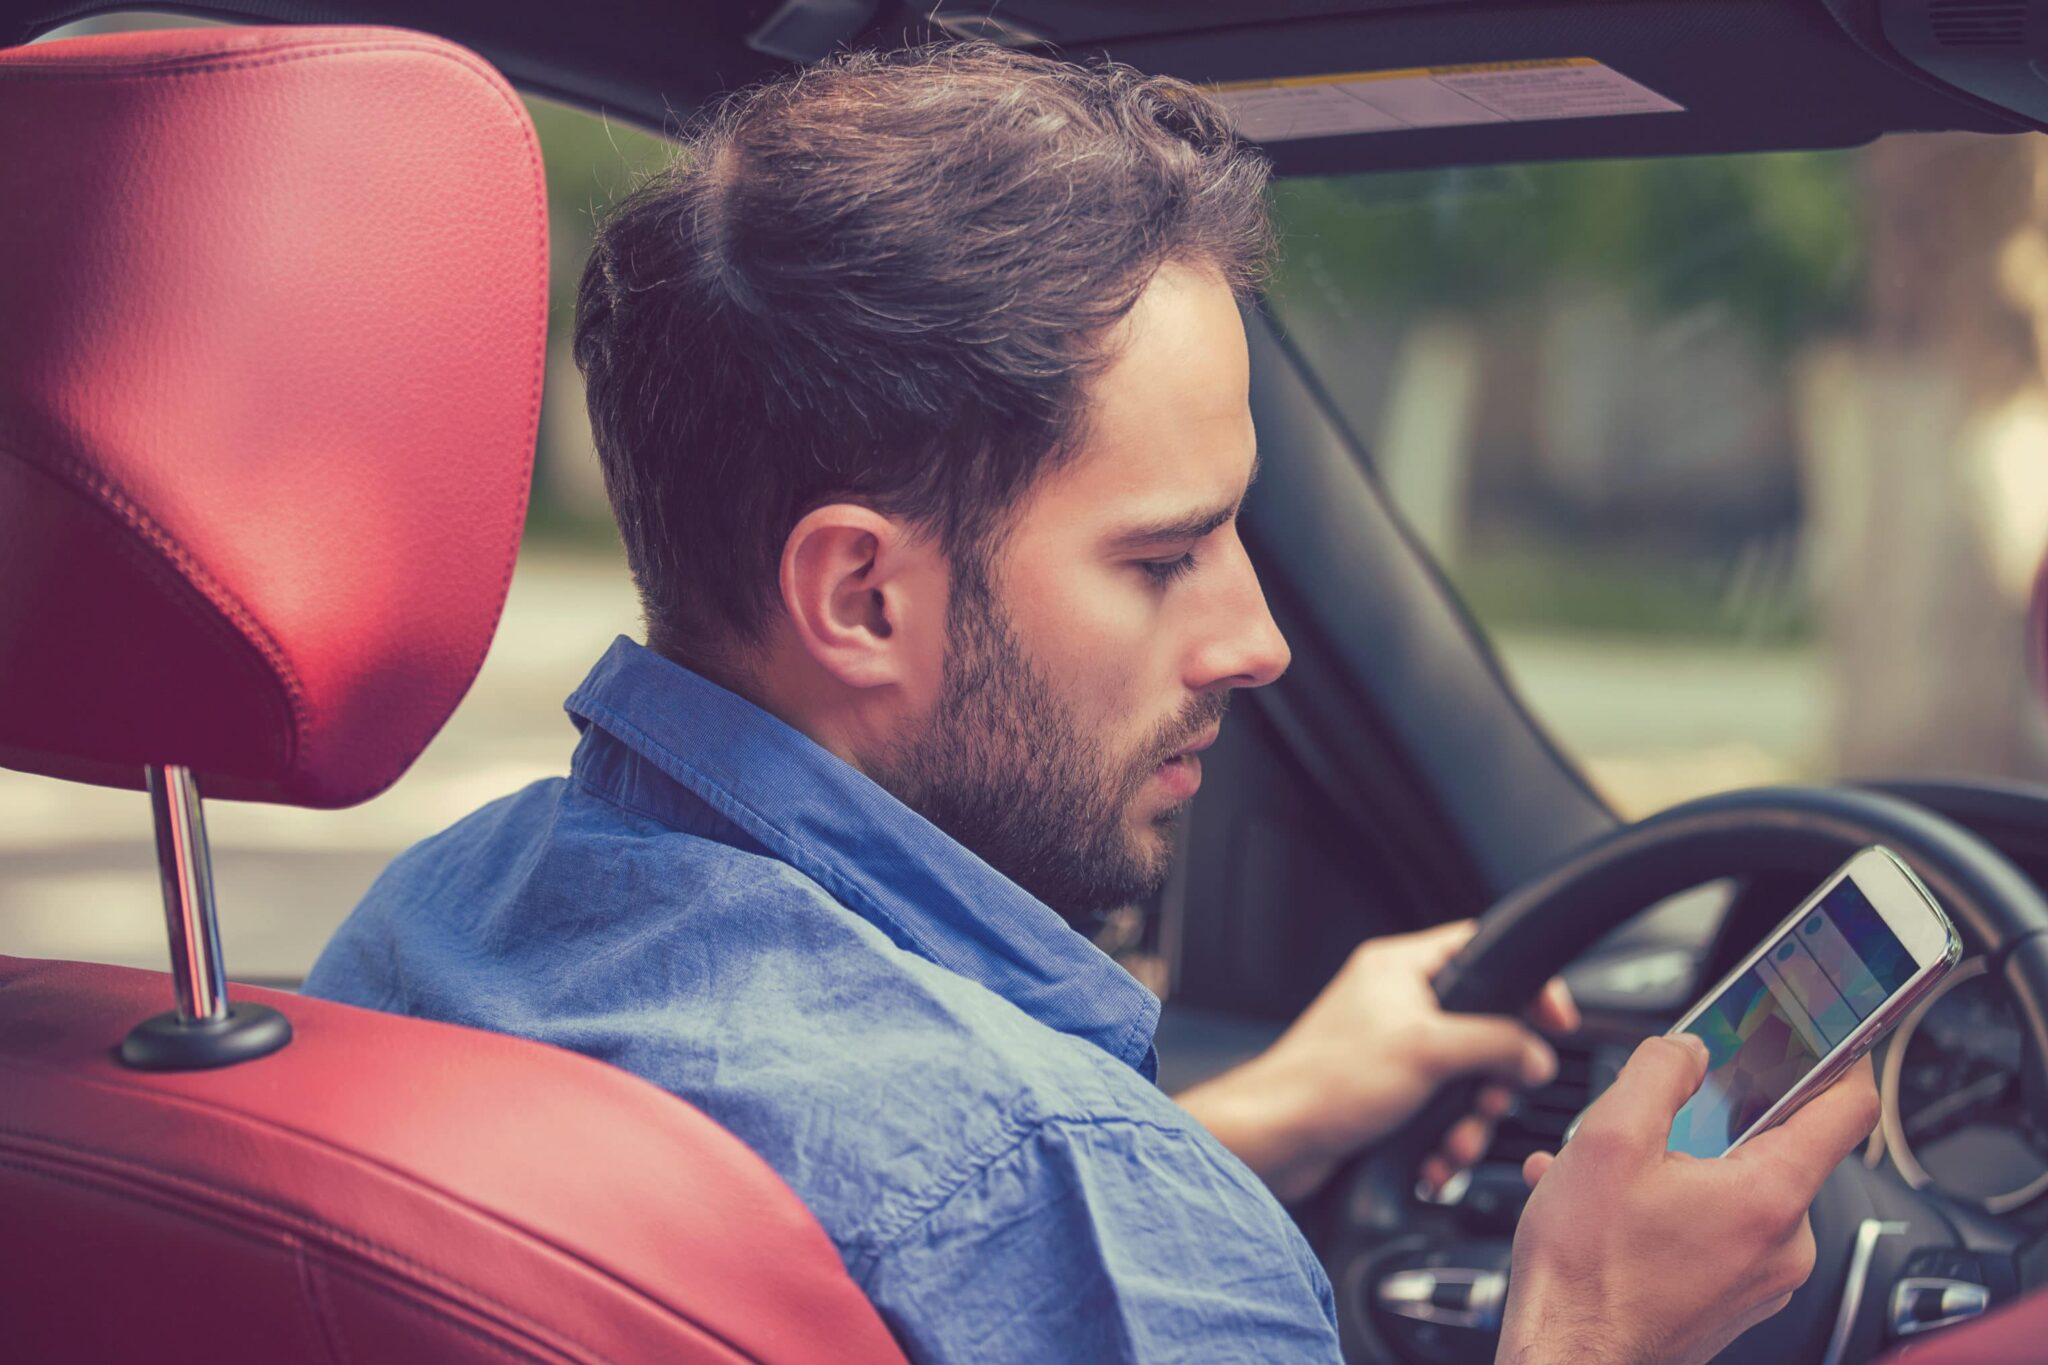 Man in the driver's seat of a car looks at his smartphone while driving.